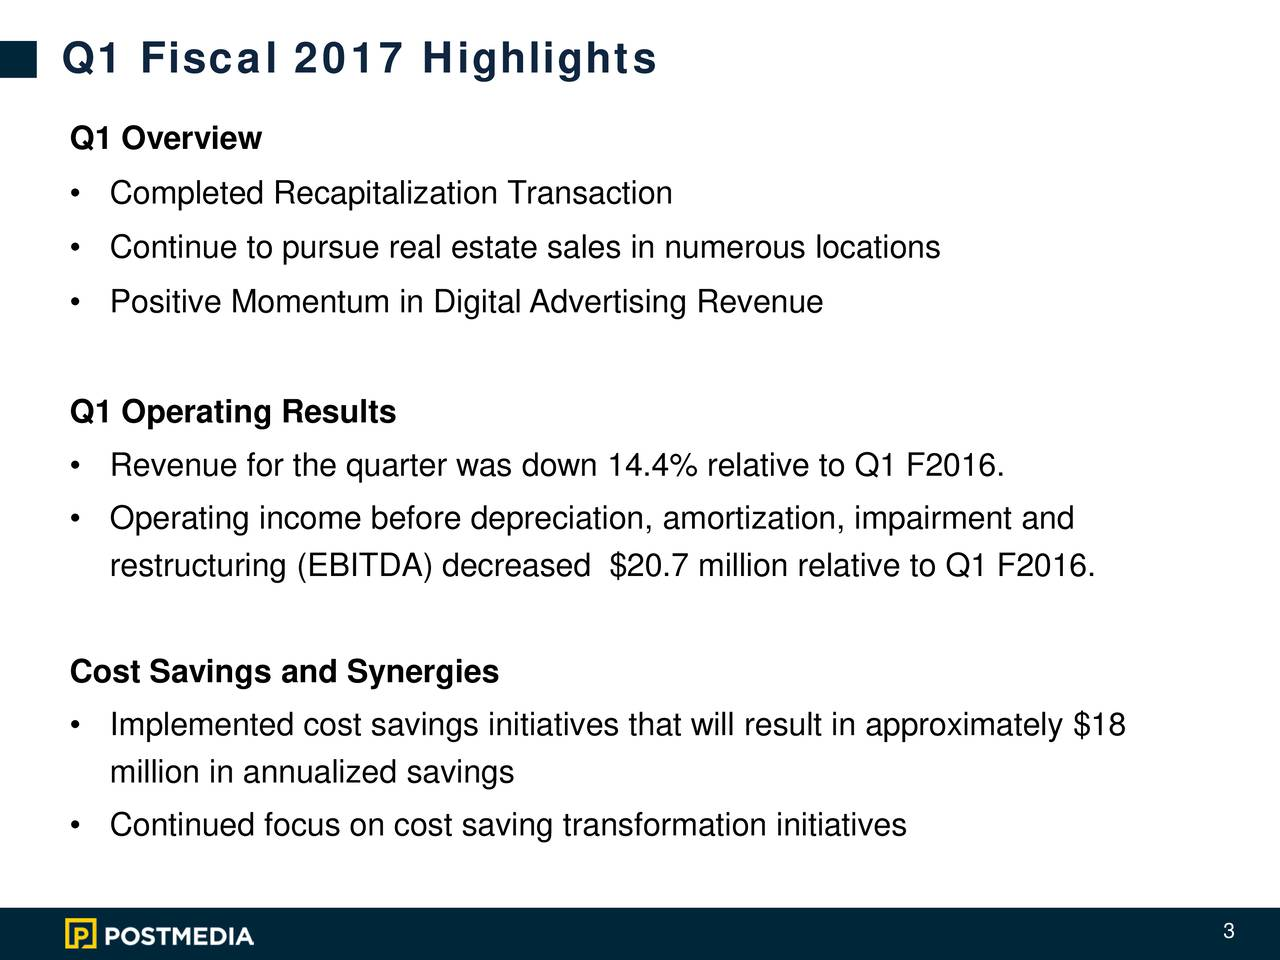 Q1 Overview Completed Recapitalization Transaction Continue to pursue real estate sales in numerous locations Positive Momentum in Digital Advertising Revenue Q1 Operating Results Revenue for the quarter was down 14.4% relative to Q1 F2016. Operating income before depreciation, amortization, impairment and restructuring (EBITDA) decreased $20.7million relative to Q1 F2016. Cost Savings and Synergies Implemented cost savings initiatives that will result in approximately $18 million in annualized savings Continued focus on cost saving transformation initiatives 3